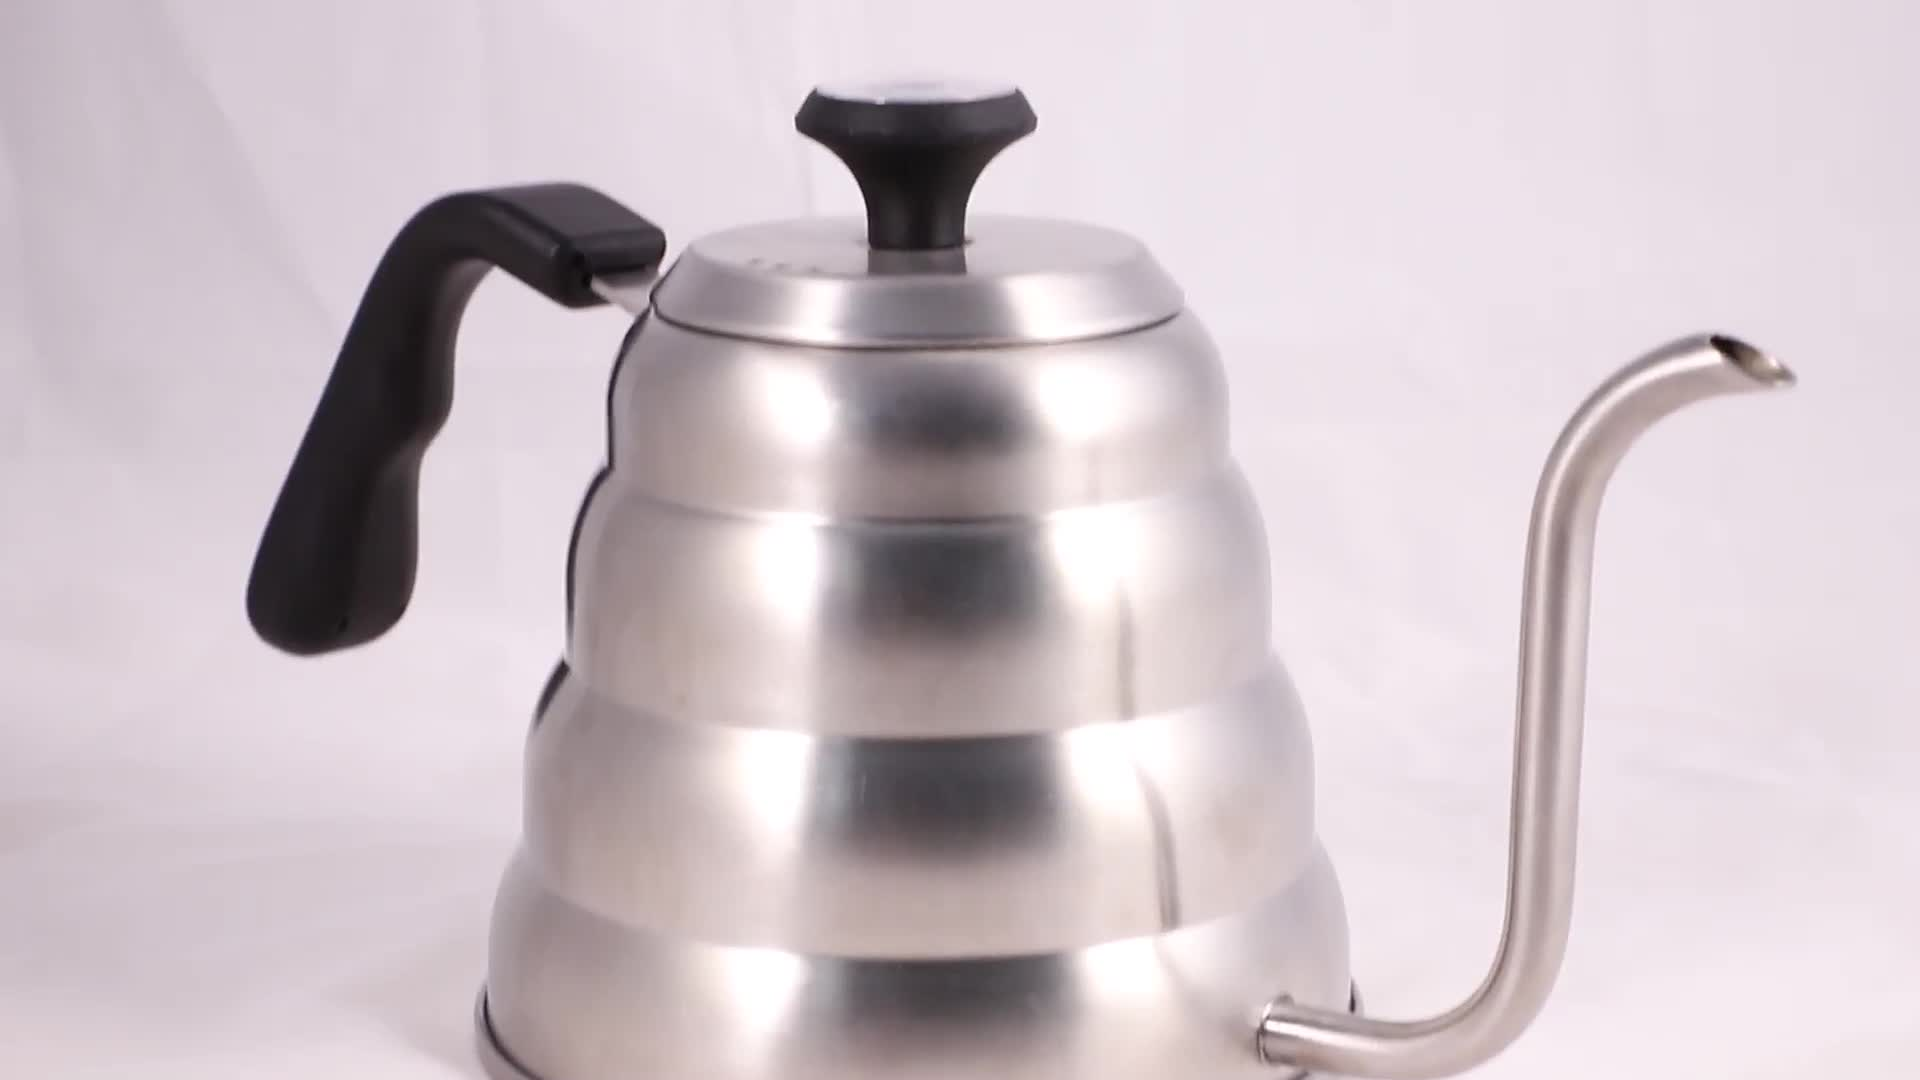 High quality stainless steel gooseneck kettle pour over coffee kettle with thermometer